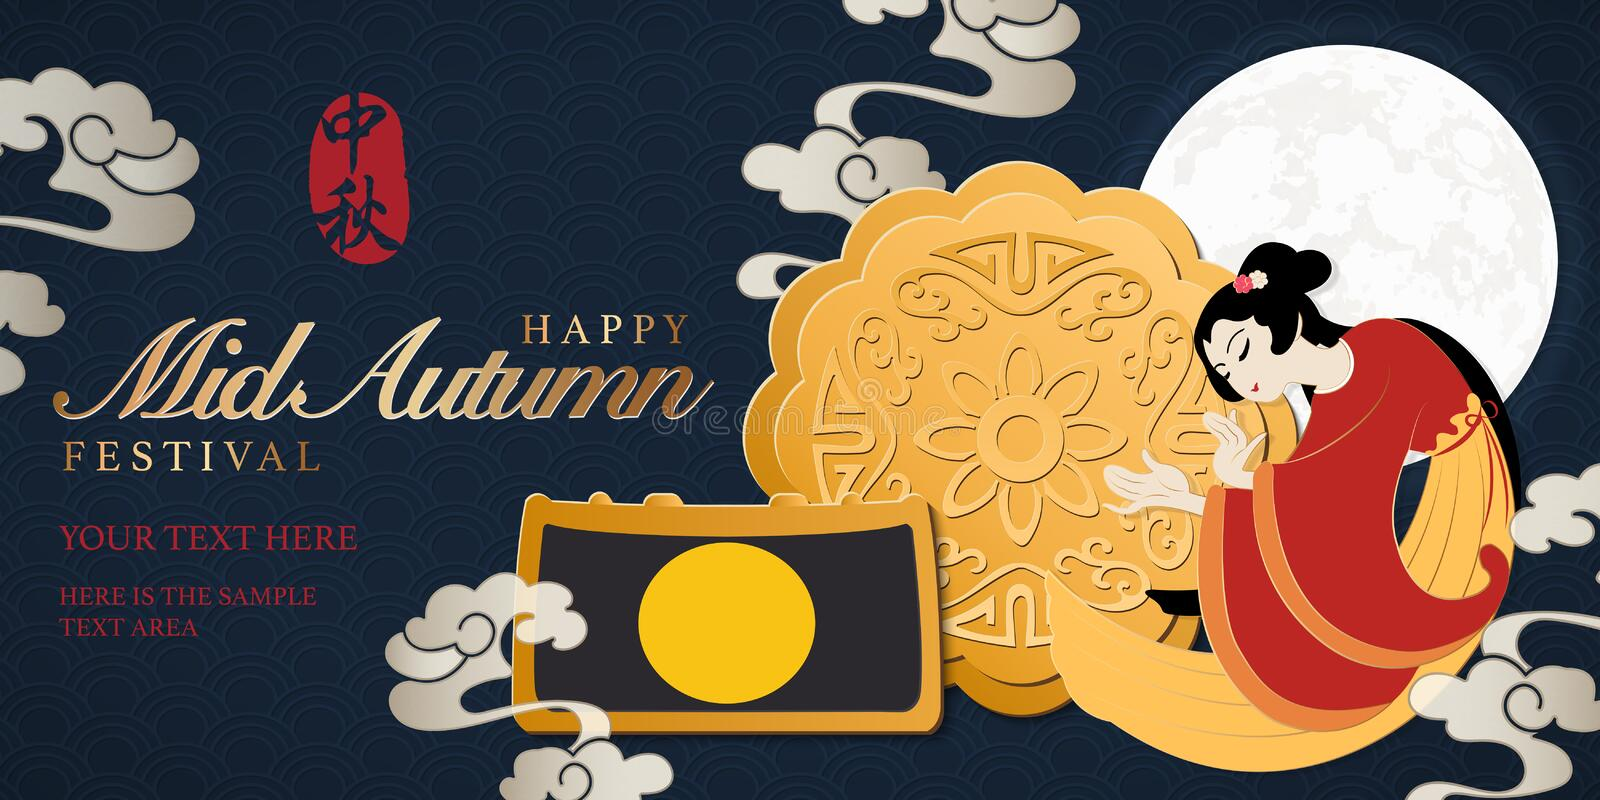 Retro style Chinese Mid Autumn festival full moon cakes spiral cloud and beautiful woman Chang E from a legend. Translation for royalty free illustration